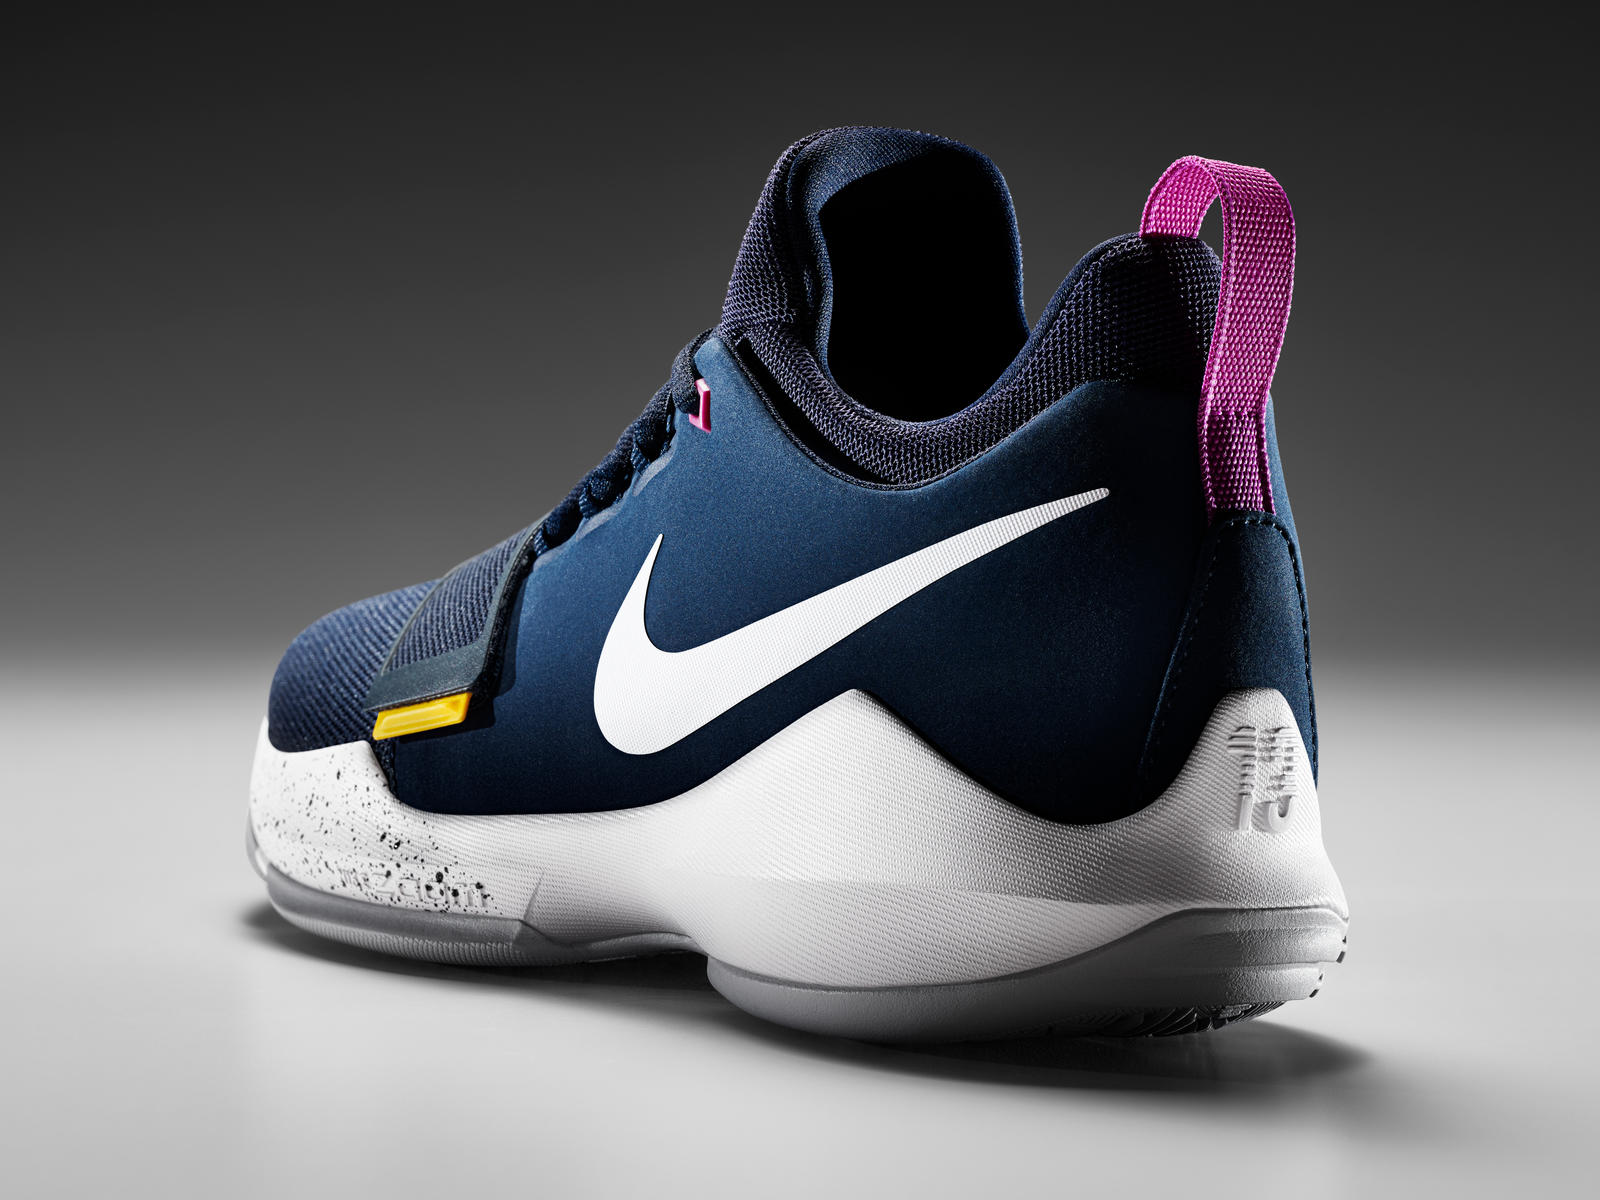 fa818bf43f9d 10 Things To Know About the PG1 - Nike News